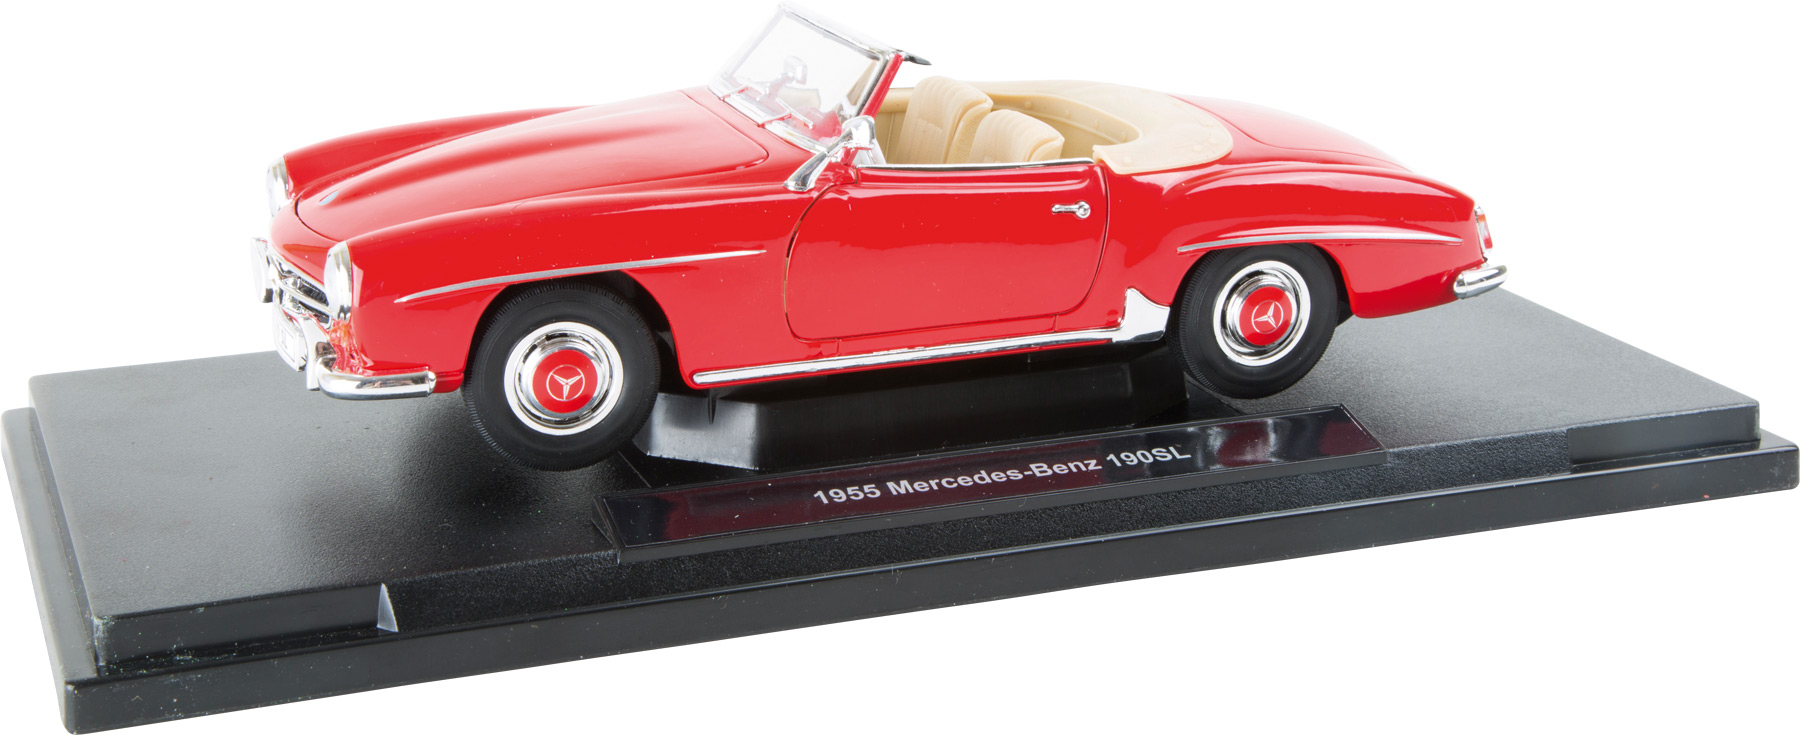 model car mercedes benz 190 sl 1955. Black Bedroom Furniture Sets. Home Design Ideas